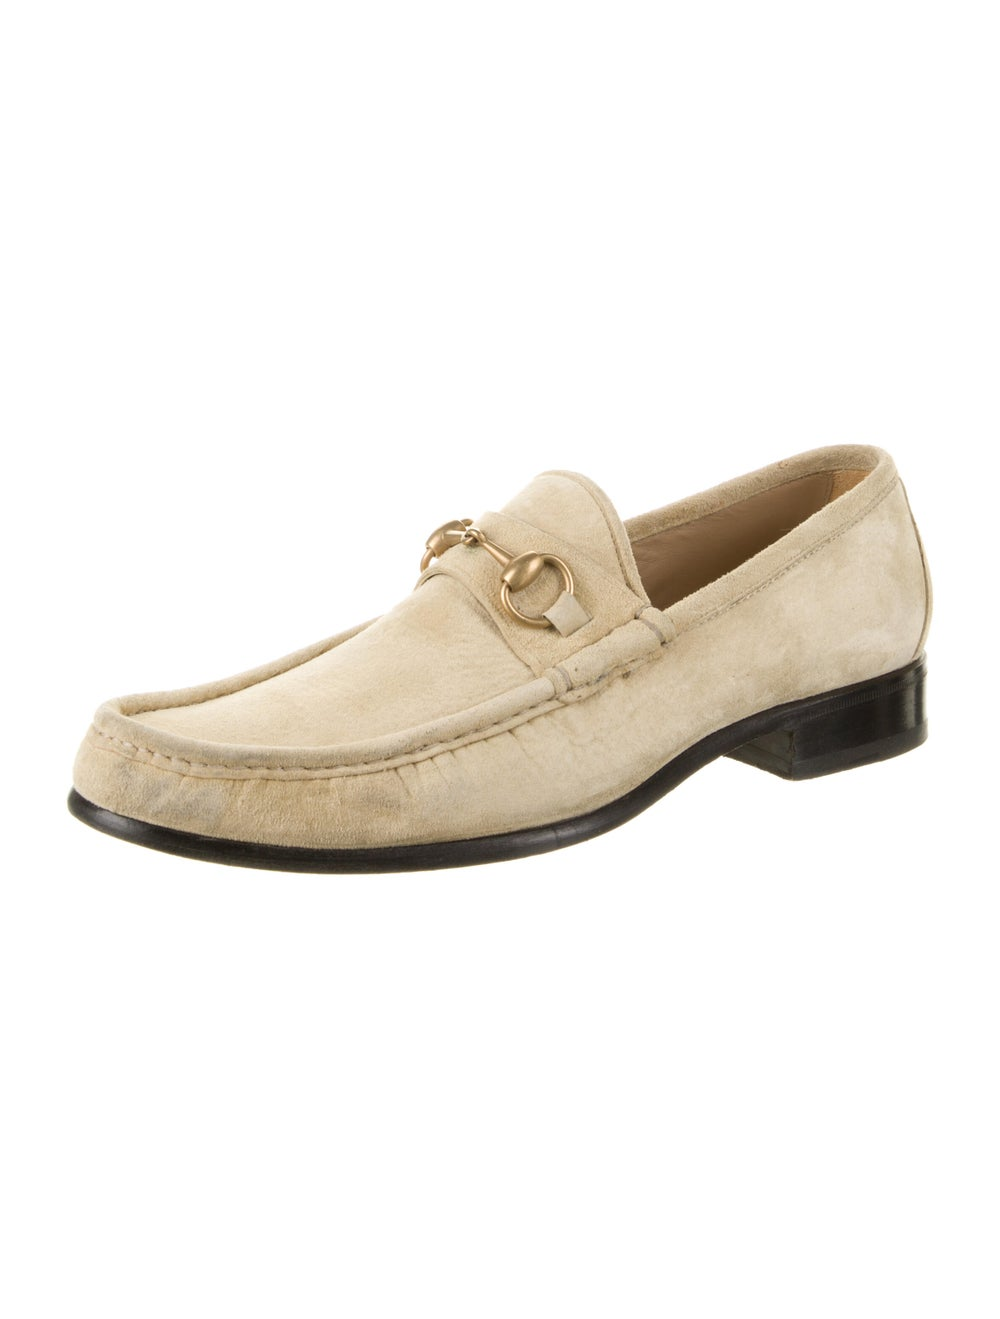 Gucci Horsebit Accent Suede Dress Loafers - image 2